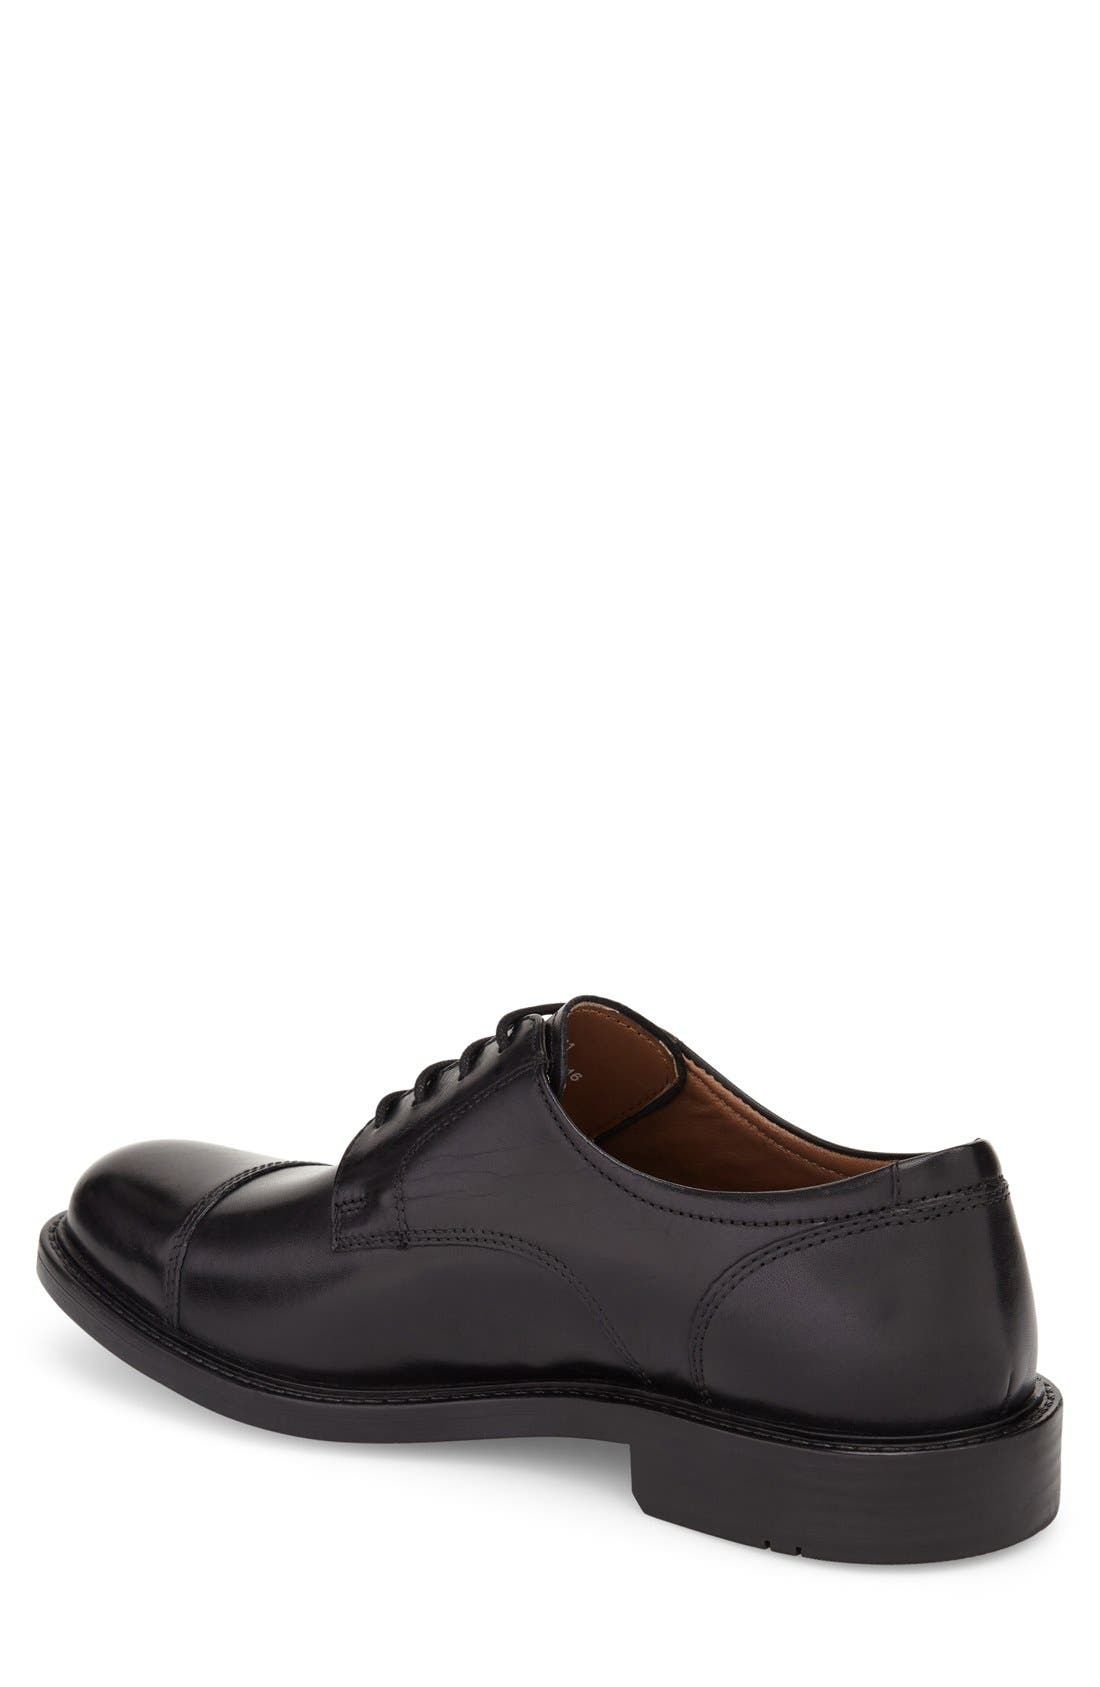 Tabor Cap Toe Derby,                             Alternate thumbnail 3, color,                             BLACK LEATHER